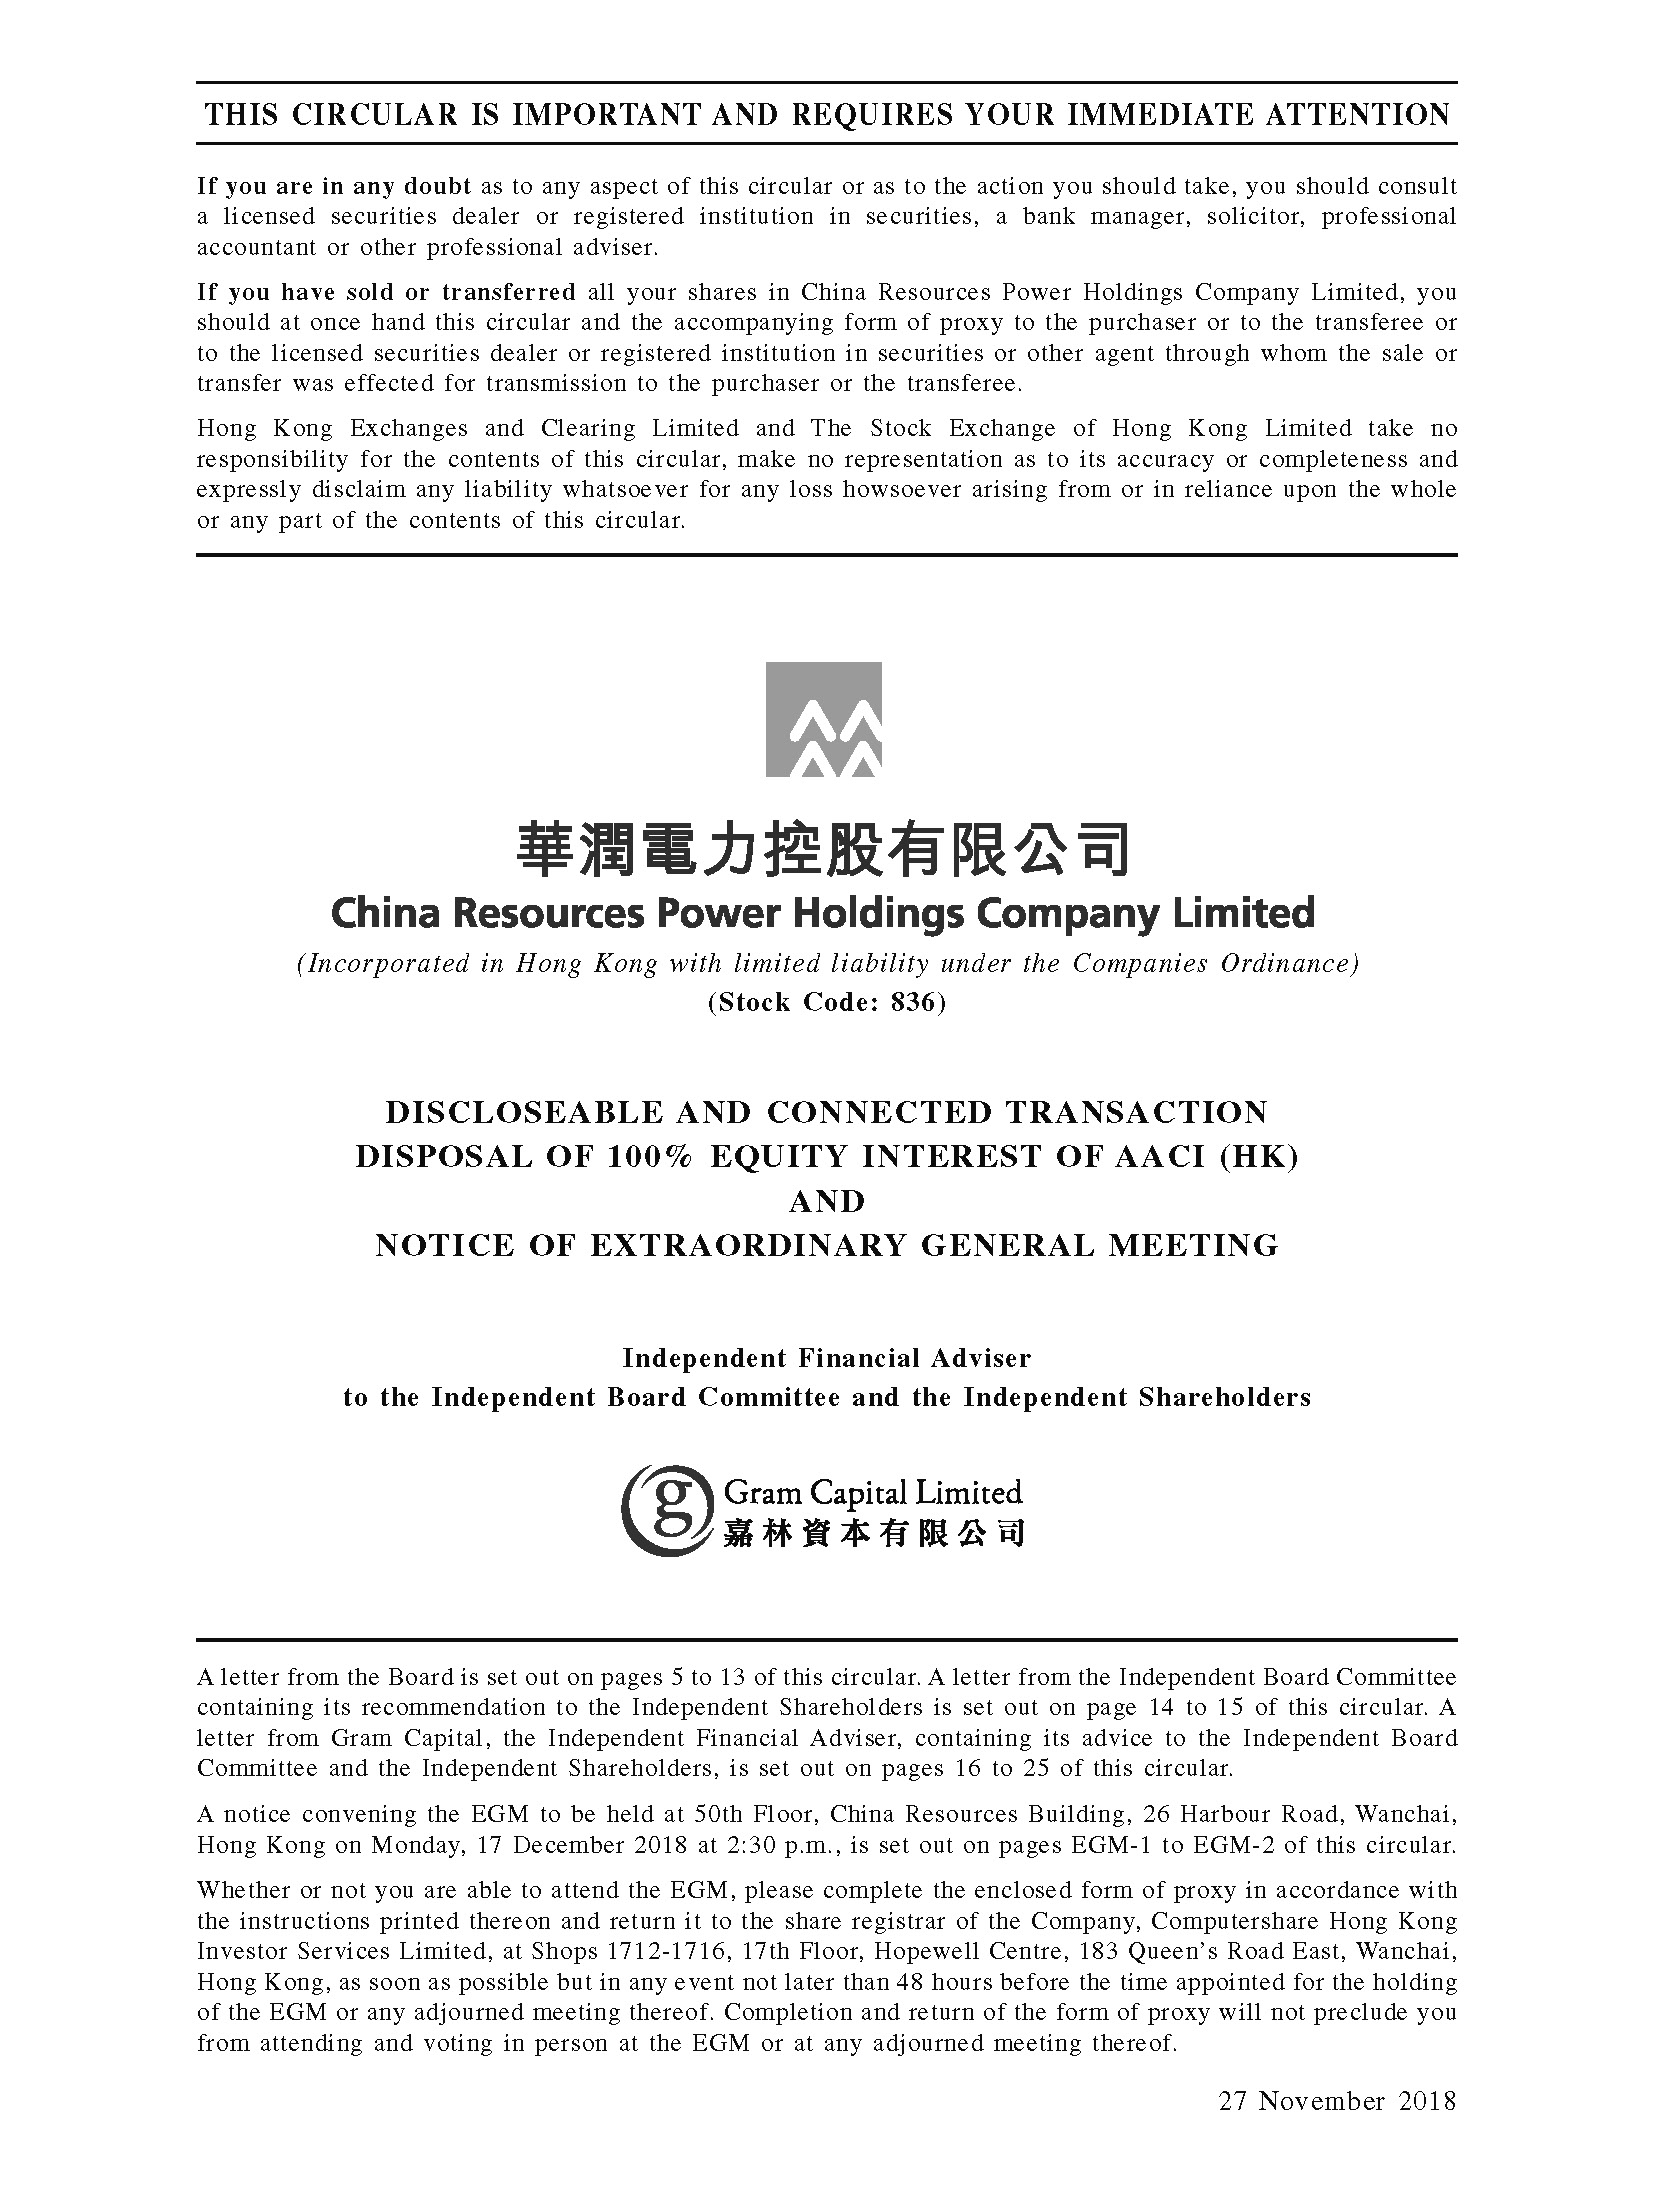 China Resources Power Holdings Company Limited